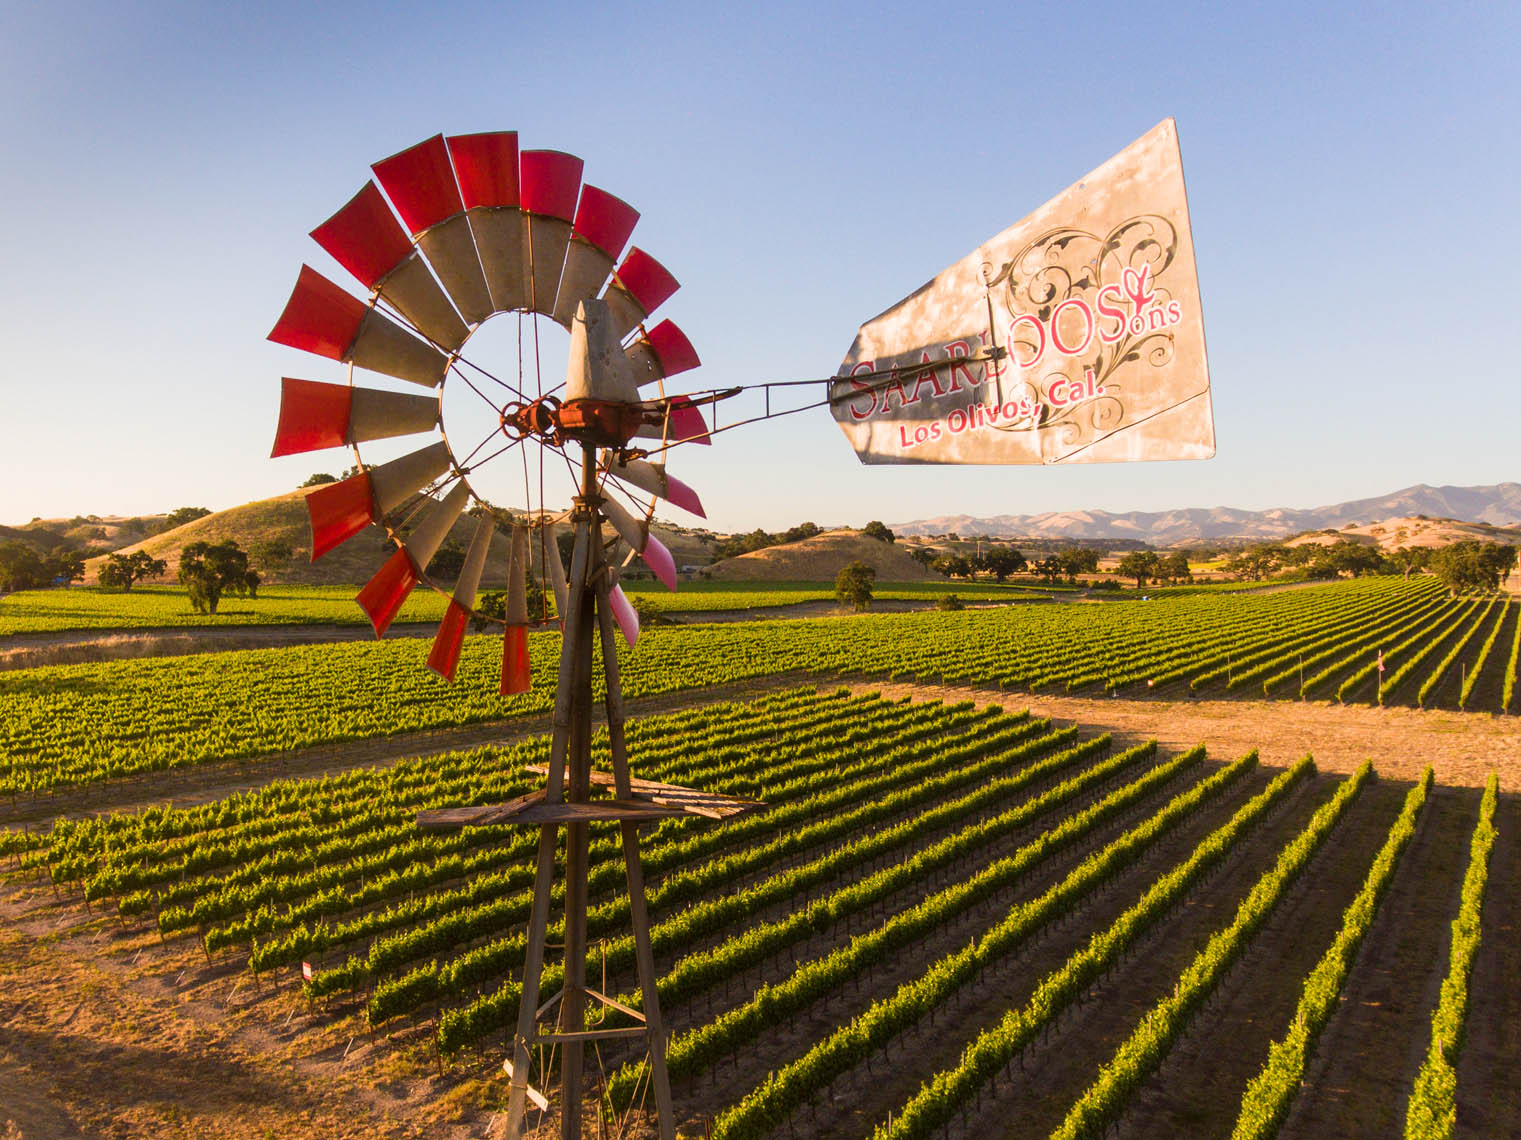 Low altitude aerial of windmill and vineyard